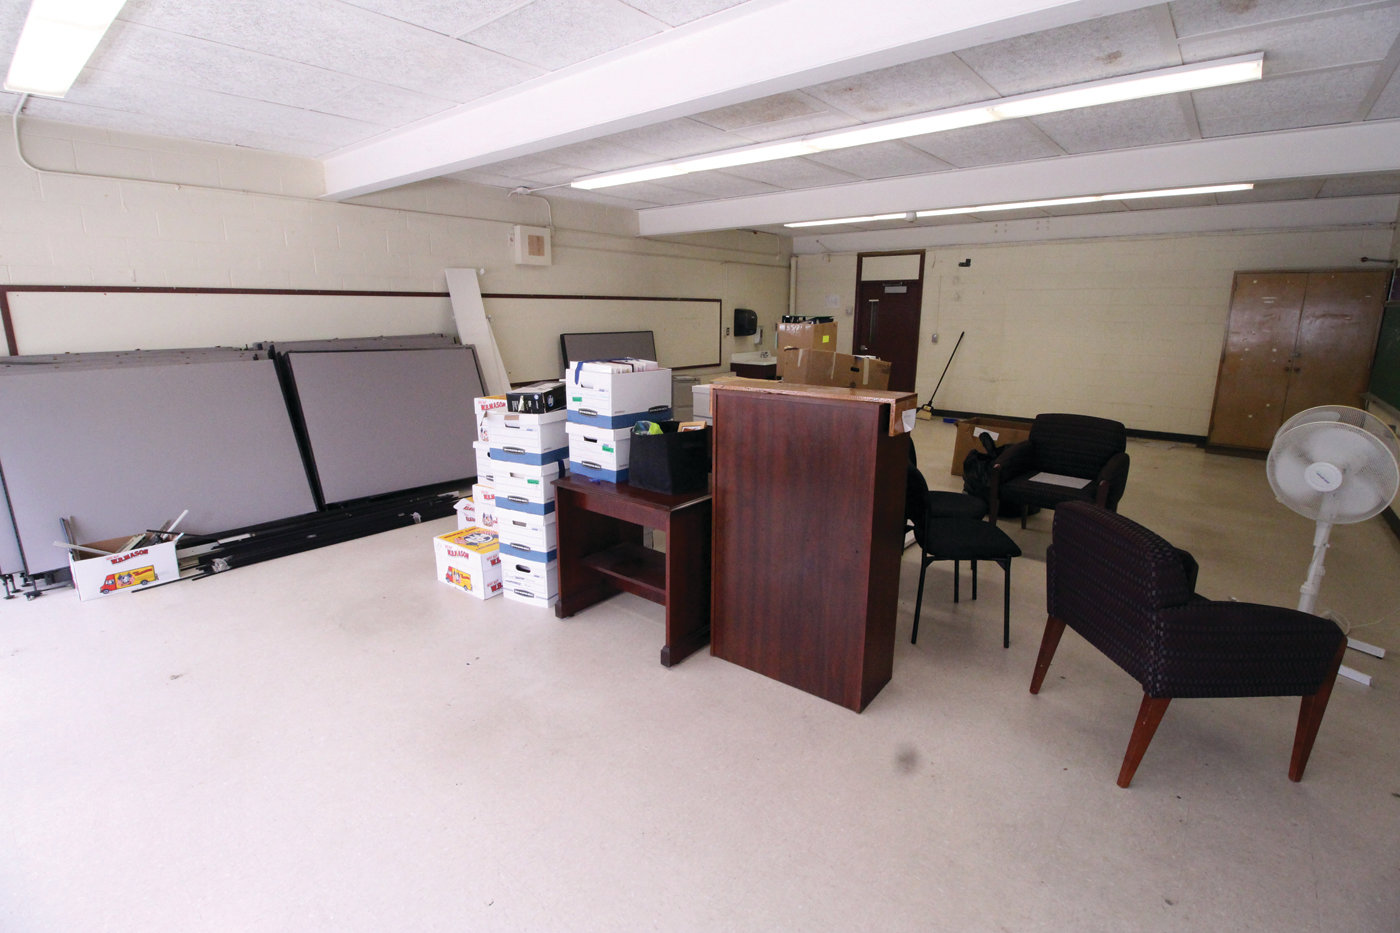 FUTURE CITY OFFICES: Former classrooms at Holden School are in the process of being converted into municipal offices.